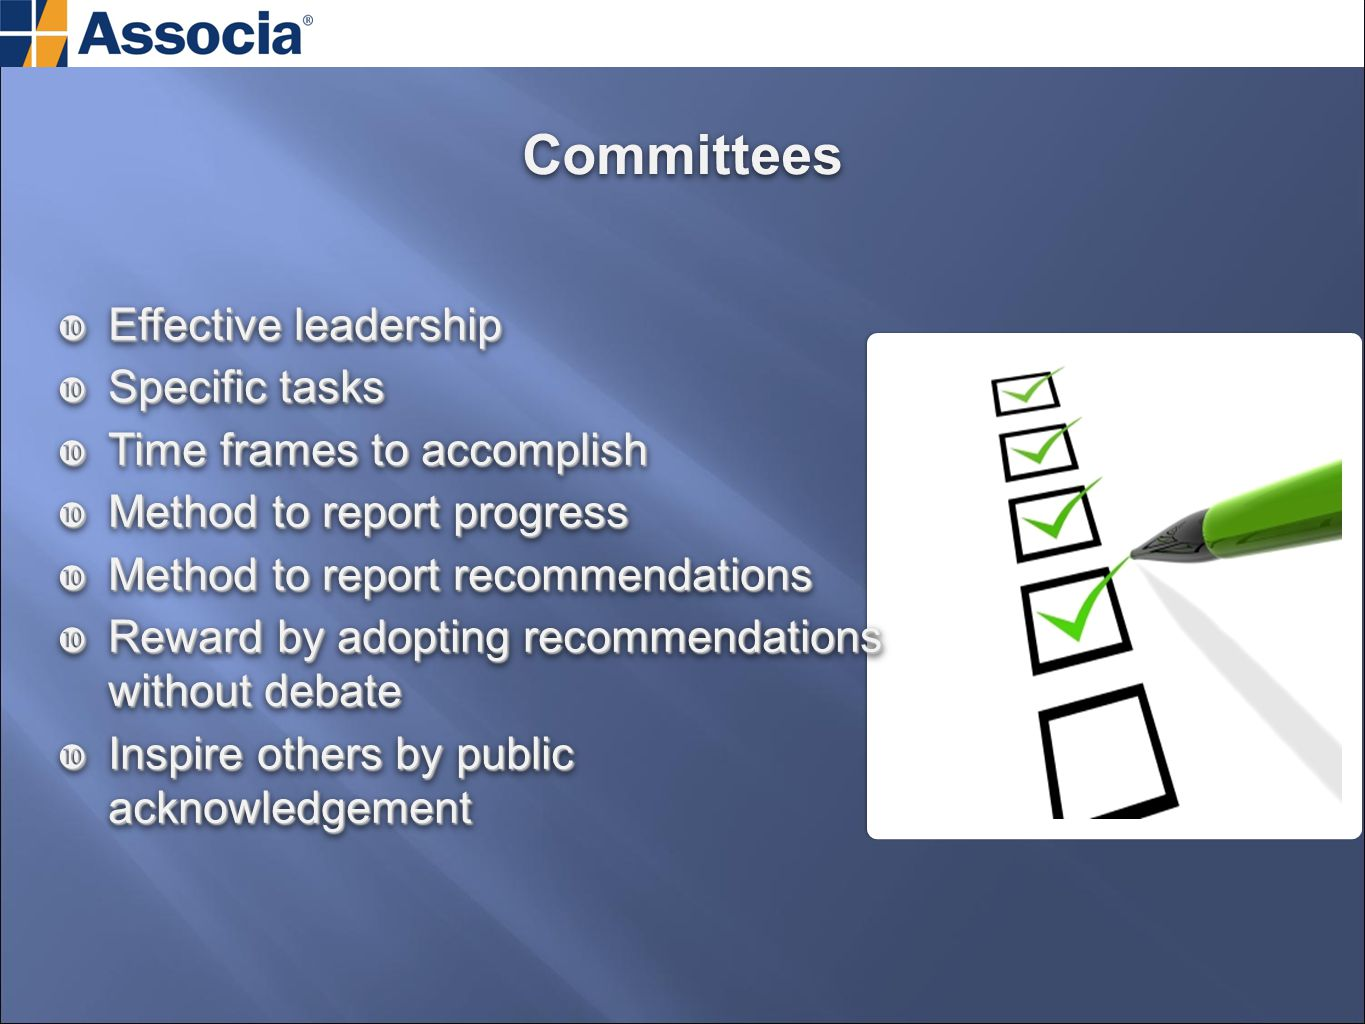 Committees  Effective leadership  Specific tasks  Time frames to accomplish  Method to report progress  Method to report recommendations  Reward by adopting recommendations without debate  Inspire others by public acknowledgement  Effective leadership  Specific tasks  Time frames to accomplish  Method to report progress  Method to report recommendations  Reward by adopting recommendations without debate  Inspire others by public acknowledgement